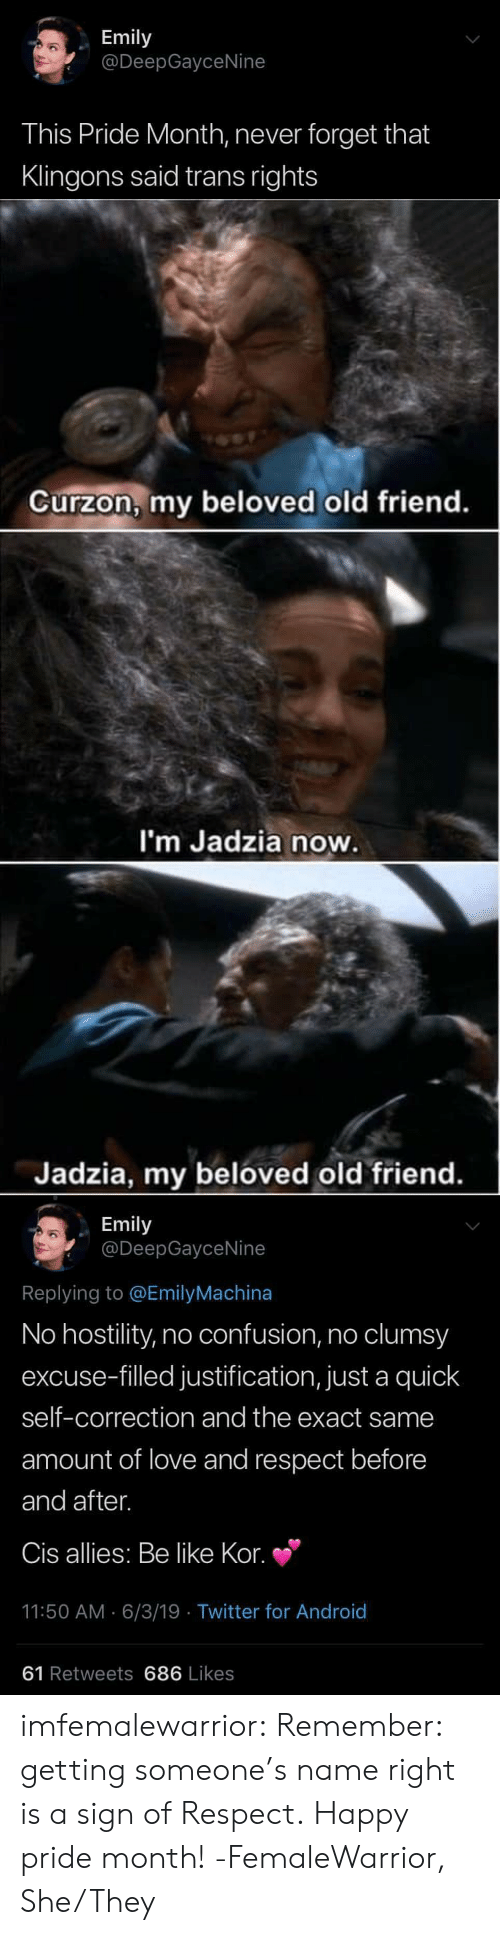 allies: Emily  @DeepGayceNine  This Pride Month, never forget that  Klingons said trans rights   Curzon, my beloved old friend.  I'm Jadzia now.  Jadzia, my beloved old friend.   Emily  @DeepGayceNine  Replying to @EmilyMachina  No hostility, no confusion, no clumsy  excuse-filled justification, just a quick  self-correction and the exact same  amount of love and respect before  and after.  Cis allies: Be like Kor.  11:50 AM 6/3/19 Twitter for And roid  61 Retweets 686 Likes imfemalewarrior:  Remember: getting someone's name right is a sign of Respect. Happy pride month! -FemaleWarrior, She/They